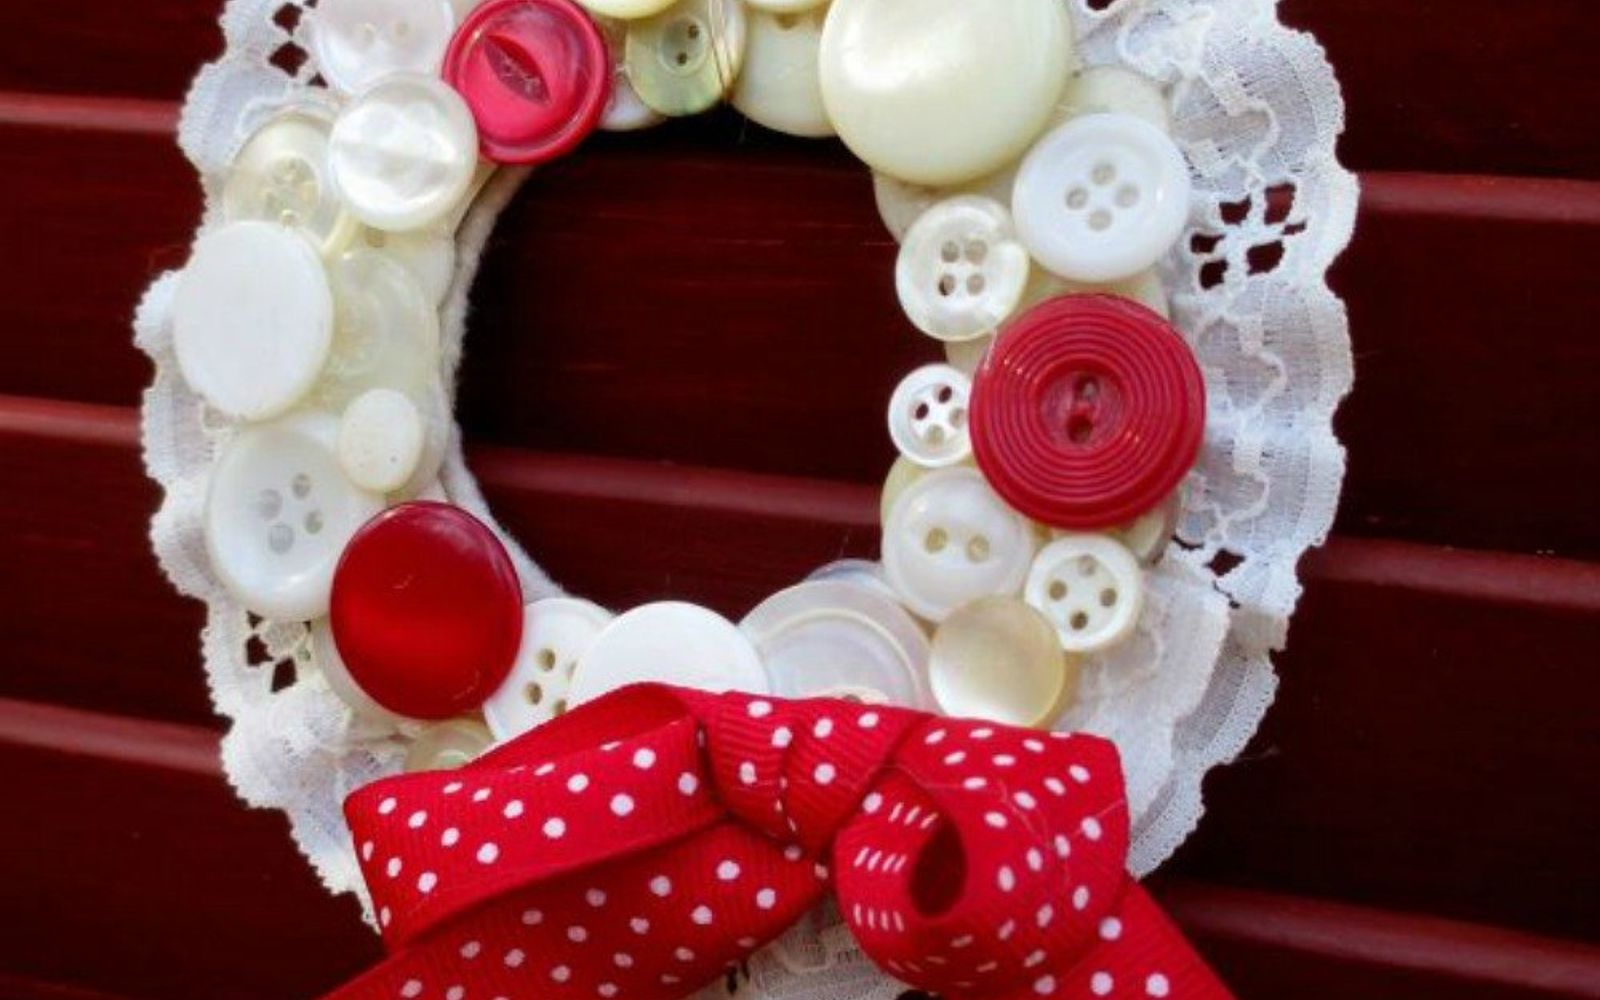 s 15 quick and easy gift ideas using buttons, Turn them into small tree ornaments